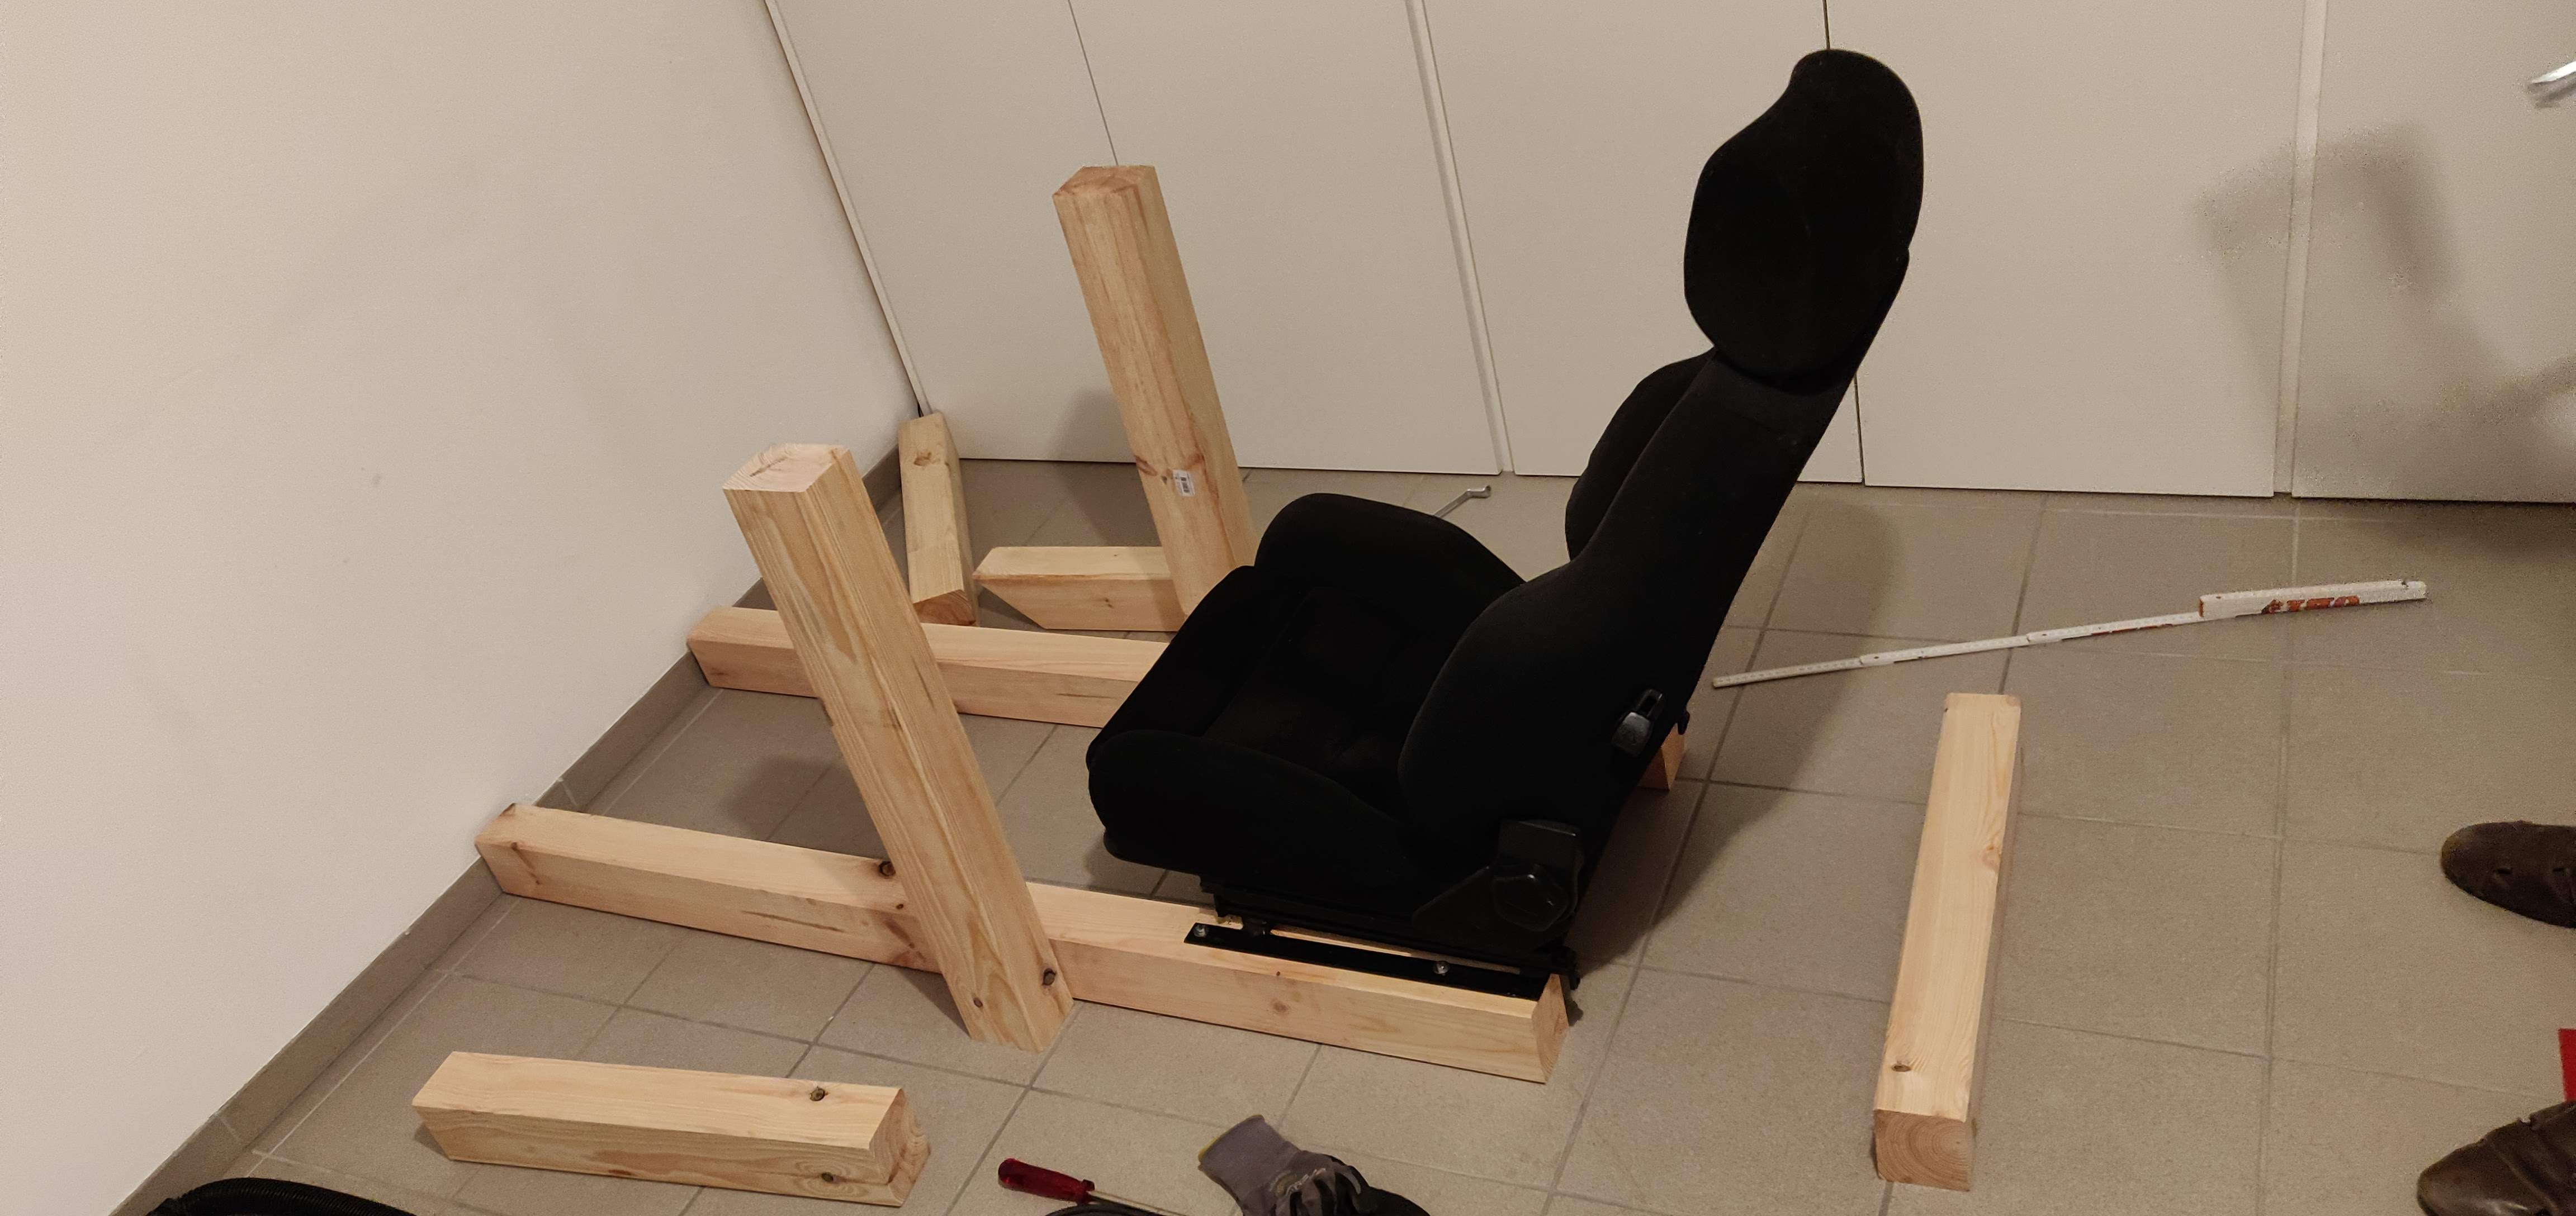 Diy Wood Sim Rig With All Components And Some Guideline Measurements Racedepartment